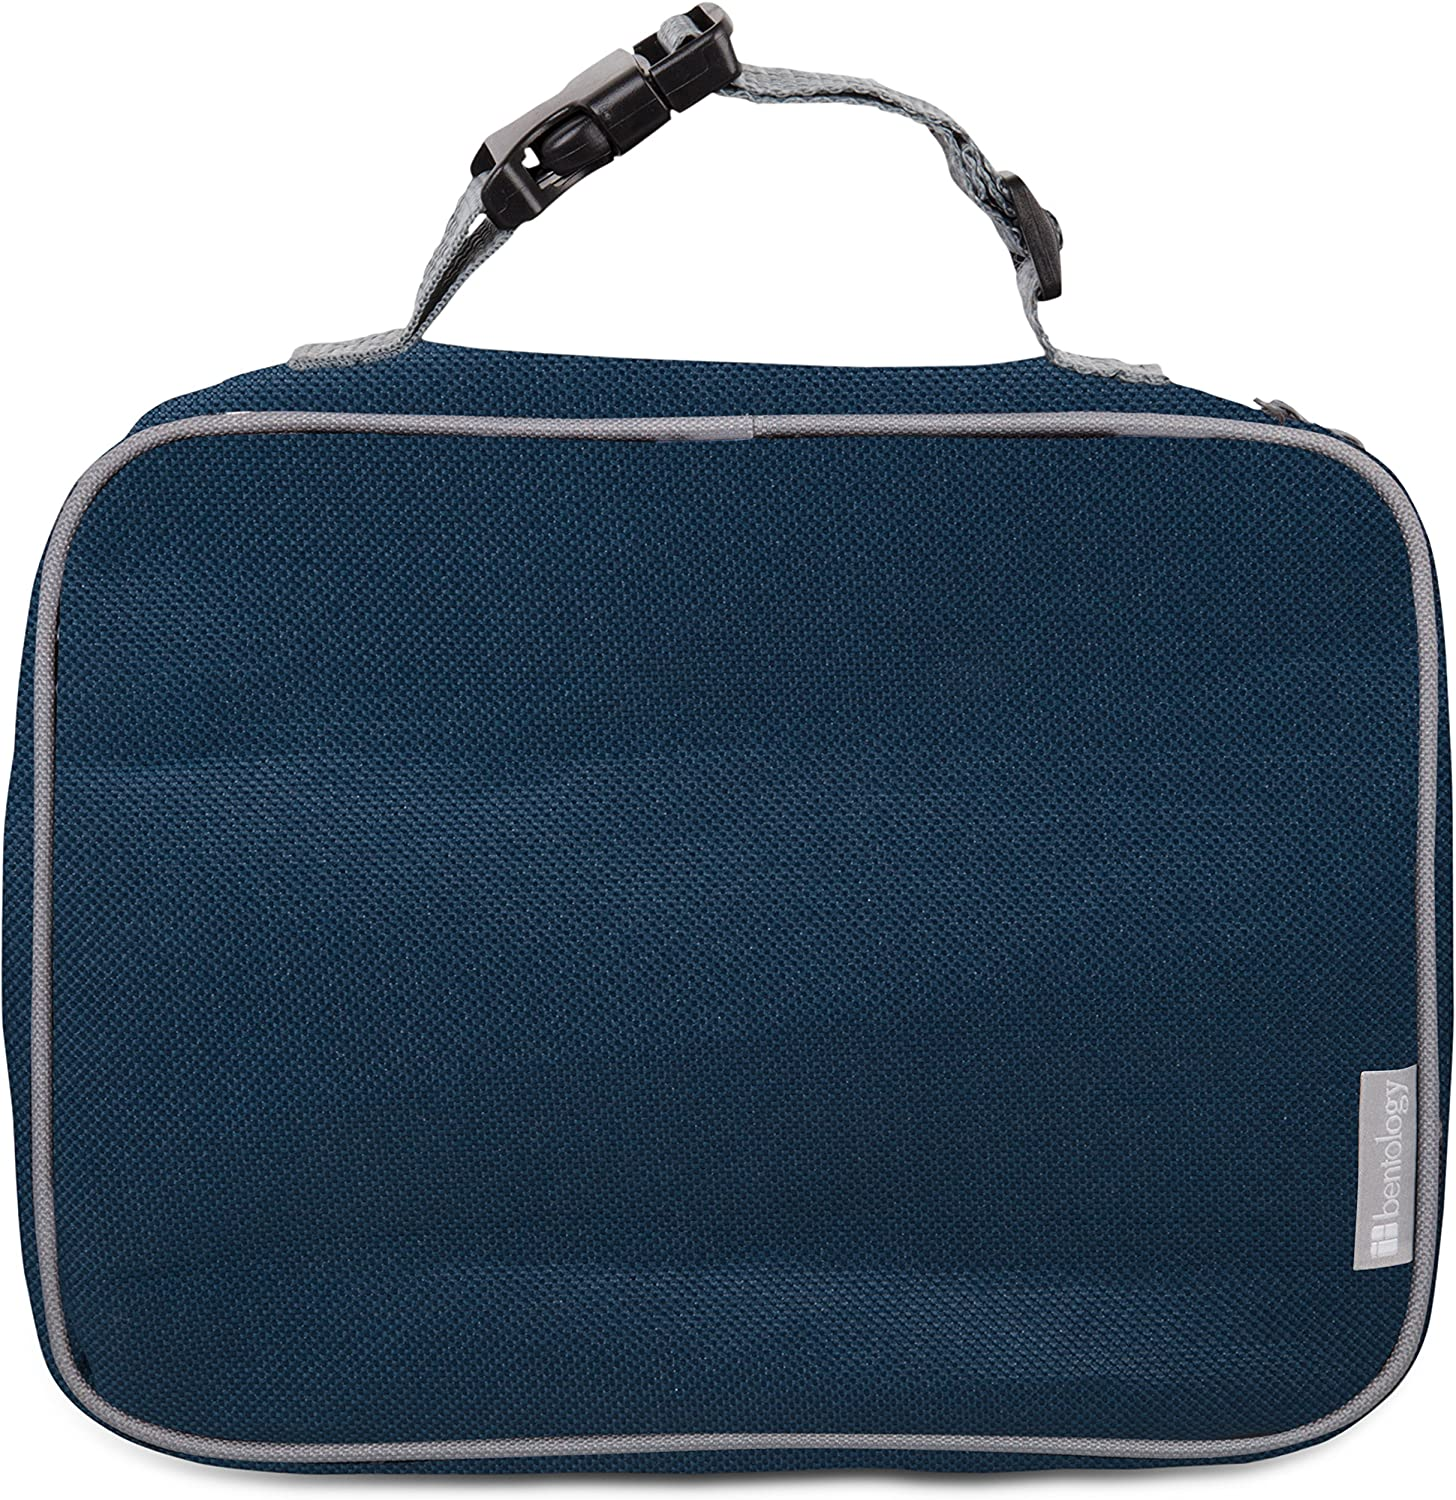 Insulated Durable Lunch Box Sleeve - Portion Perfect Reusable Lu